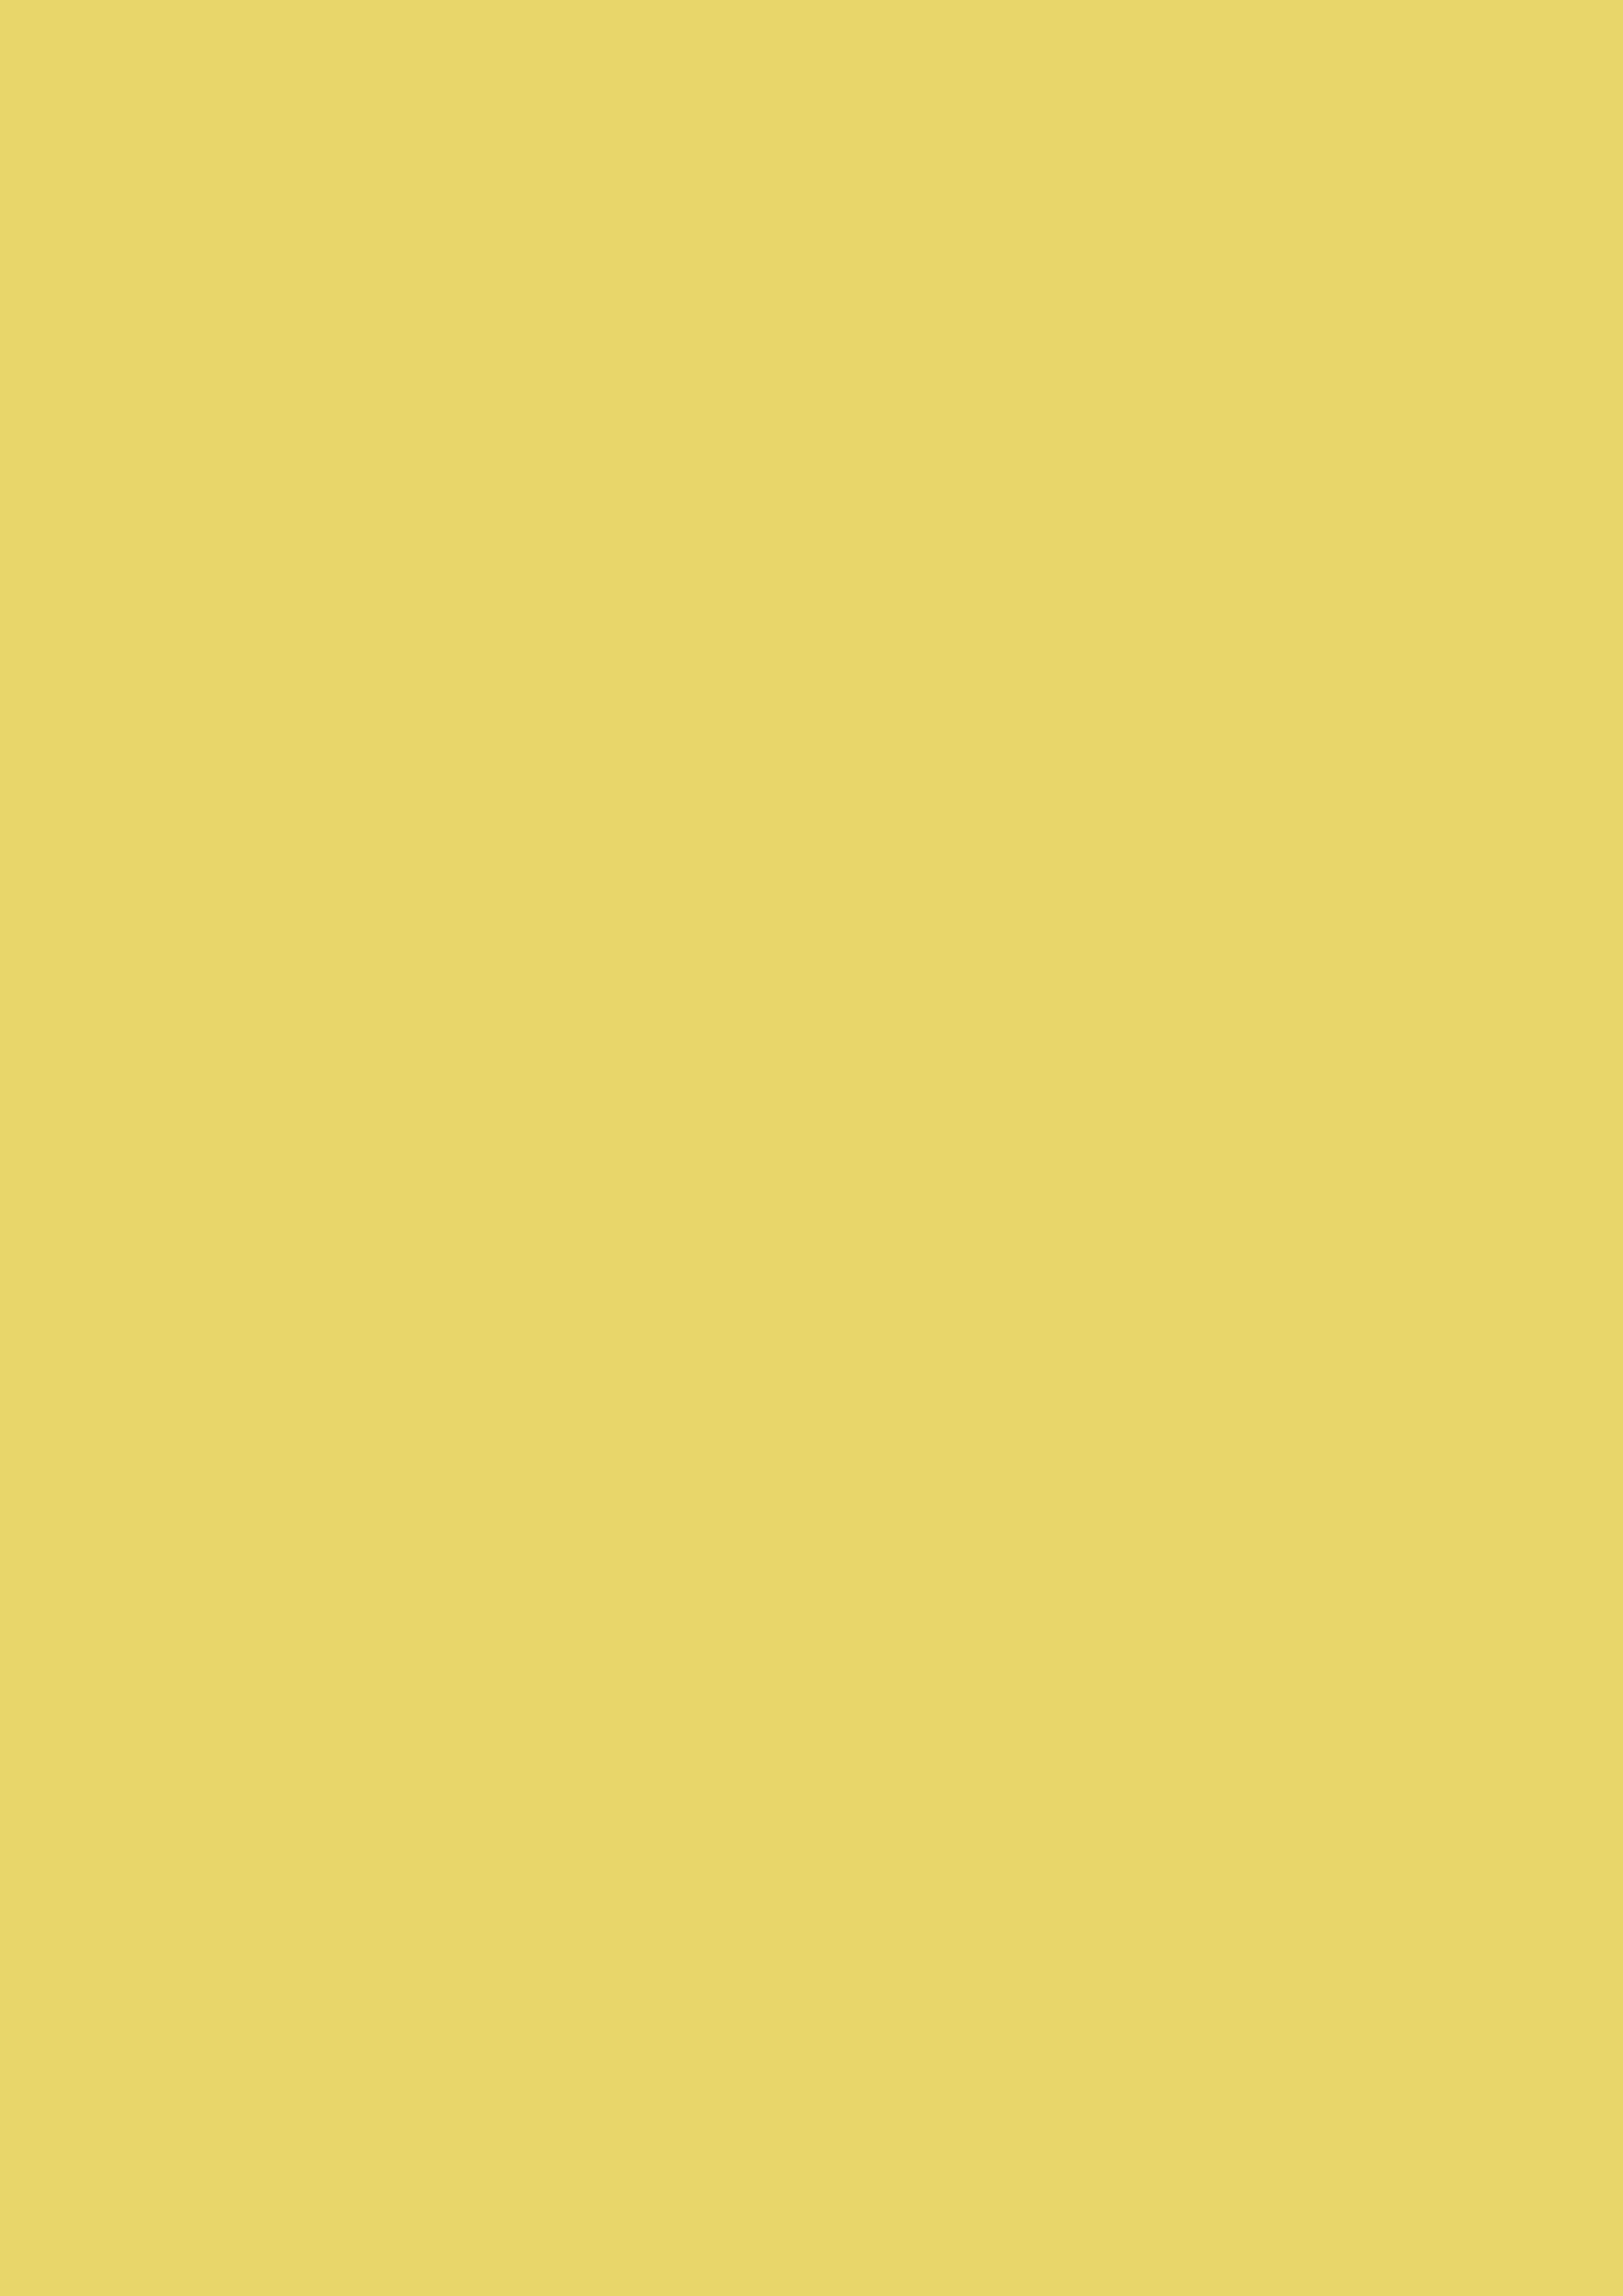 2480x3508 Arylide Yellow Solid Color Background